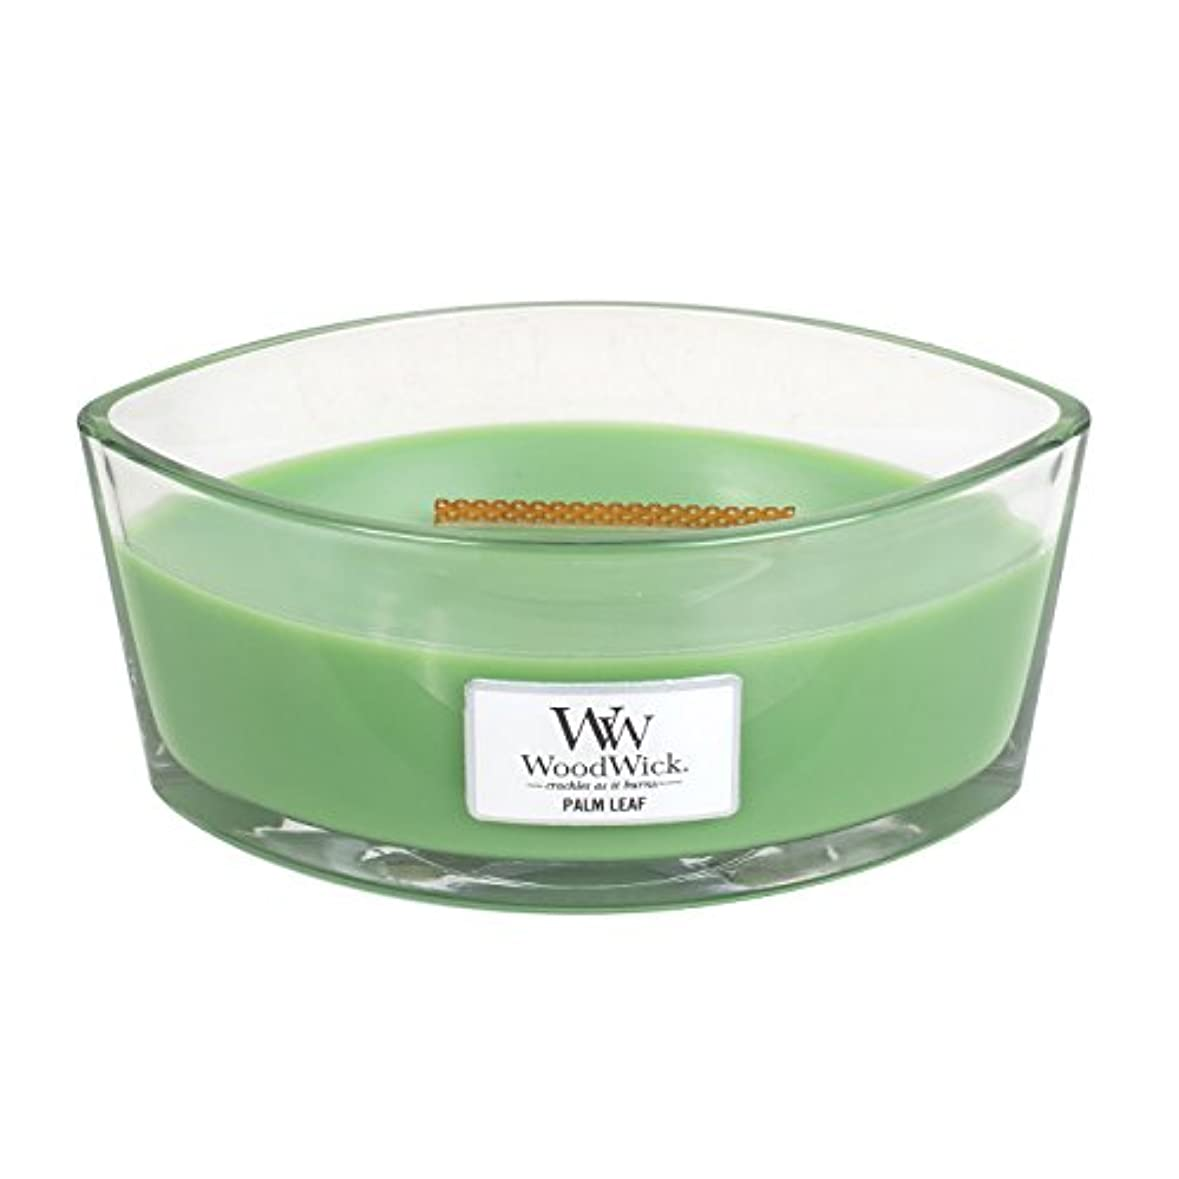 相対的期限流体Woodwick Palm Leaf , Highly Scented Candle、楕円ガラスJar with元HearthWick Flame , Large 7-inch、16オンス